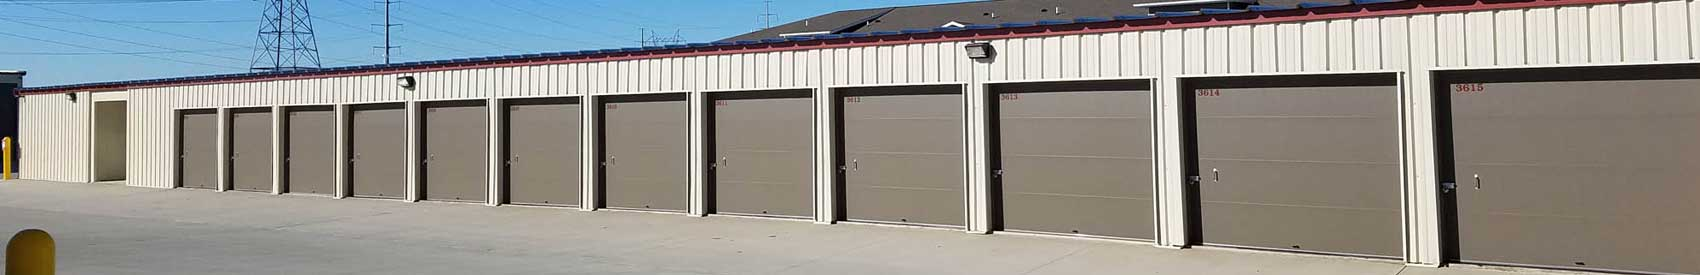 Learn more about our self storage facility in Bismarck ND; contact us today!